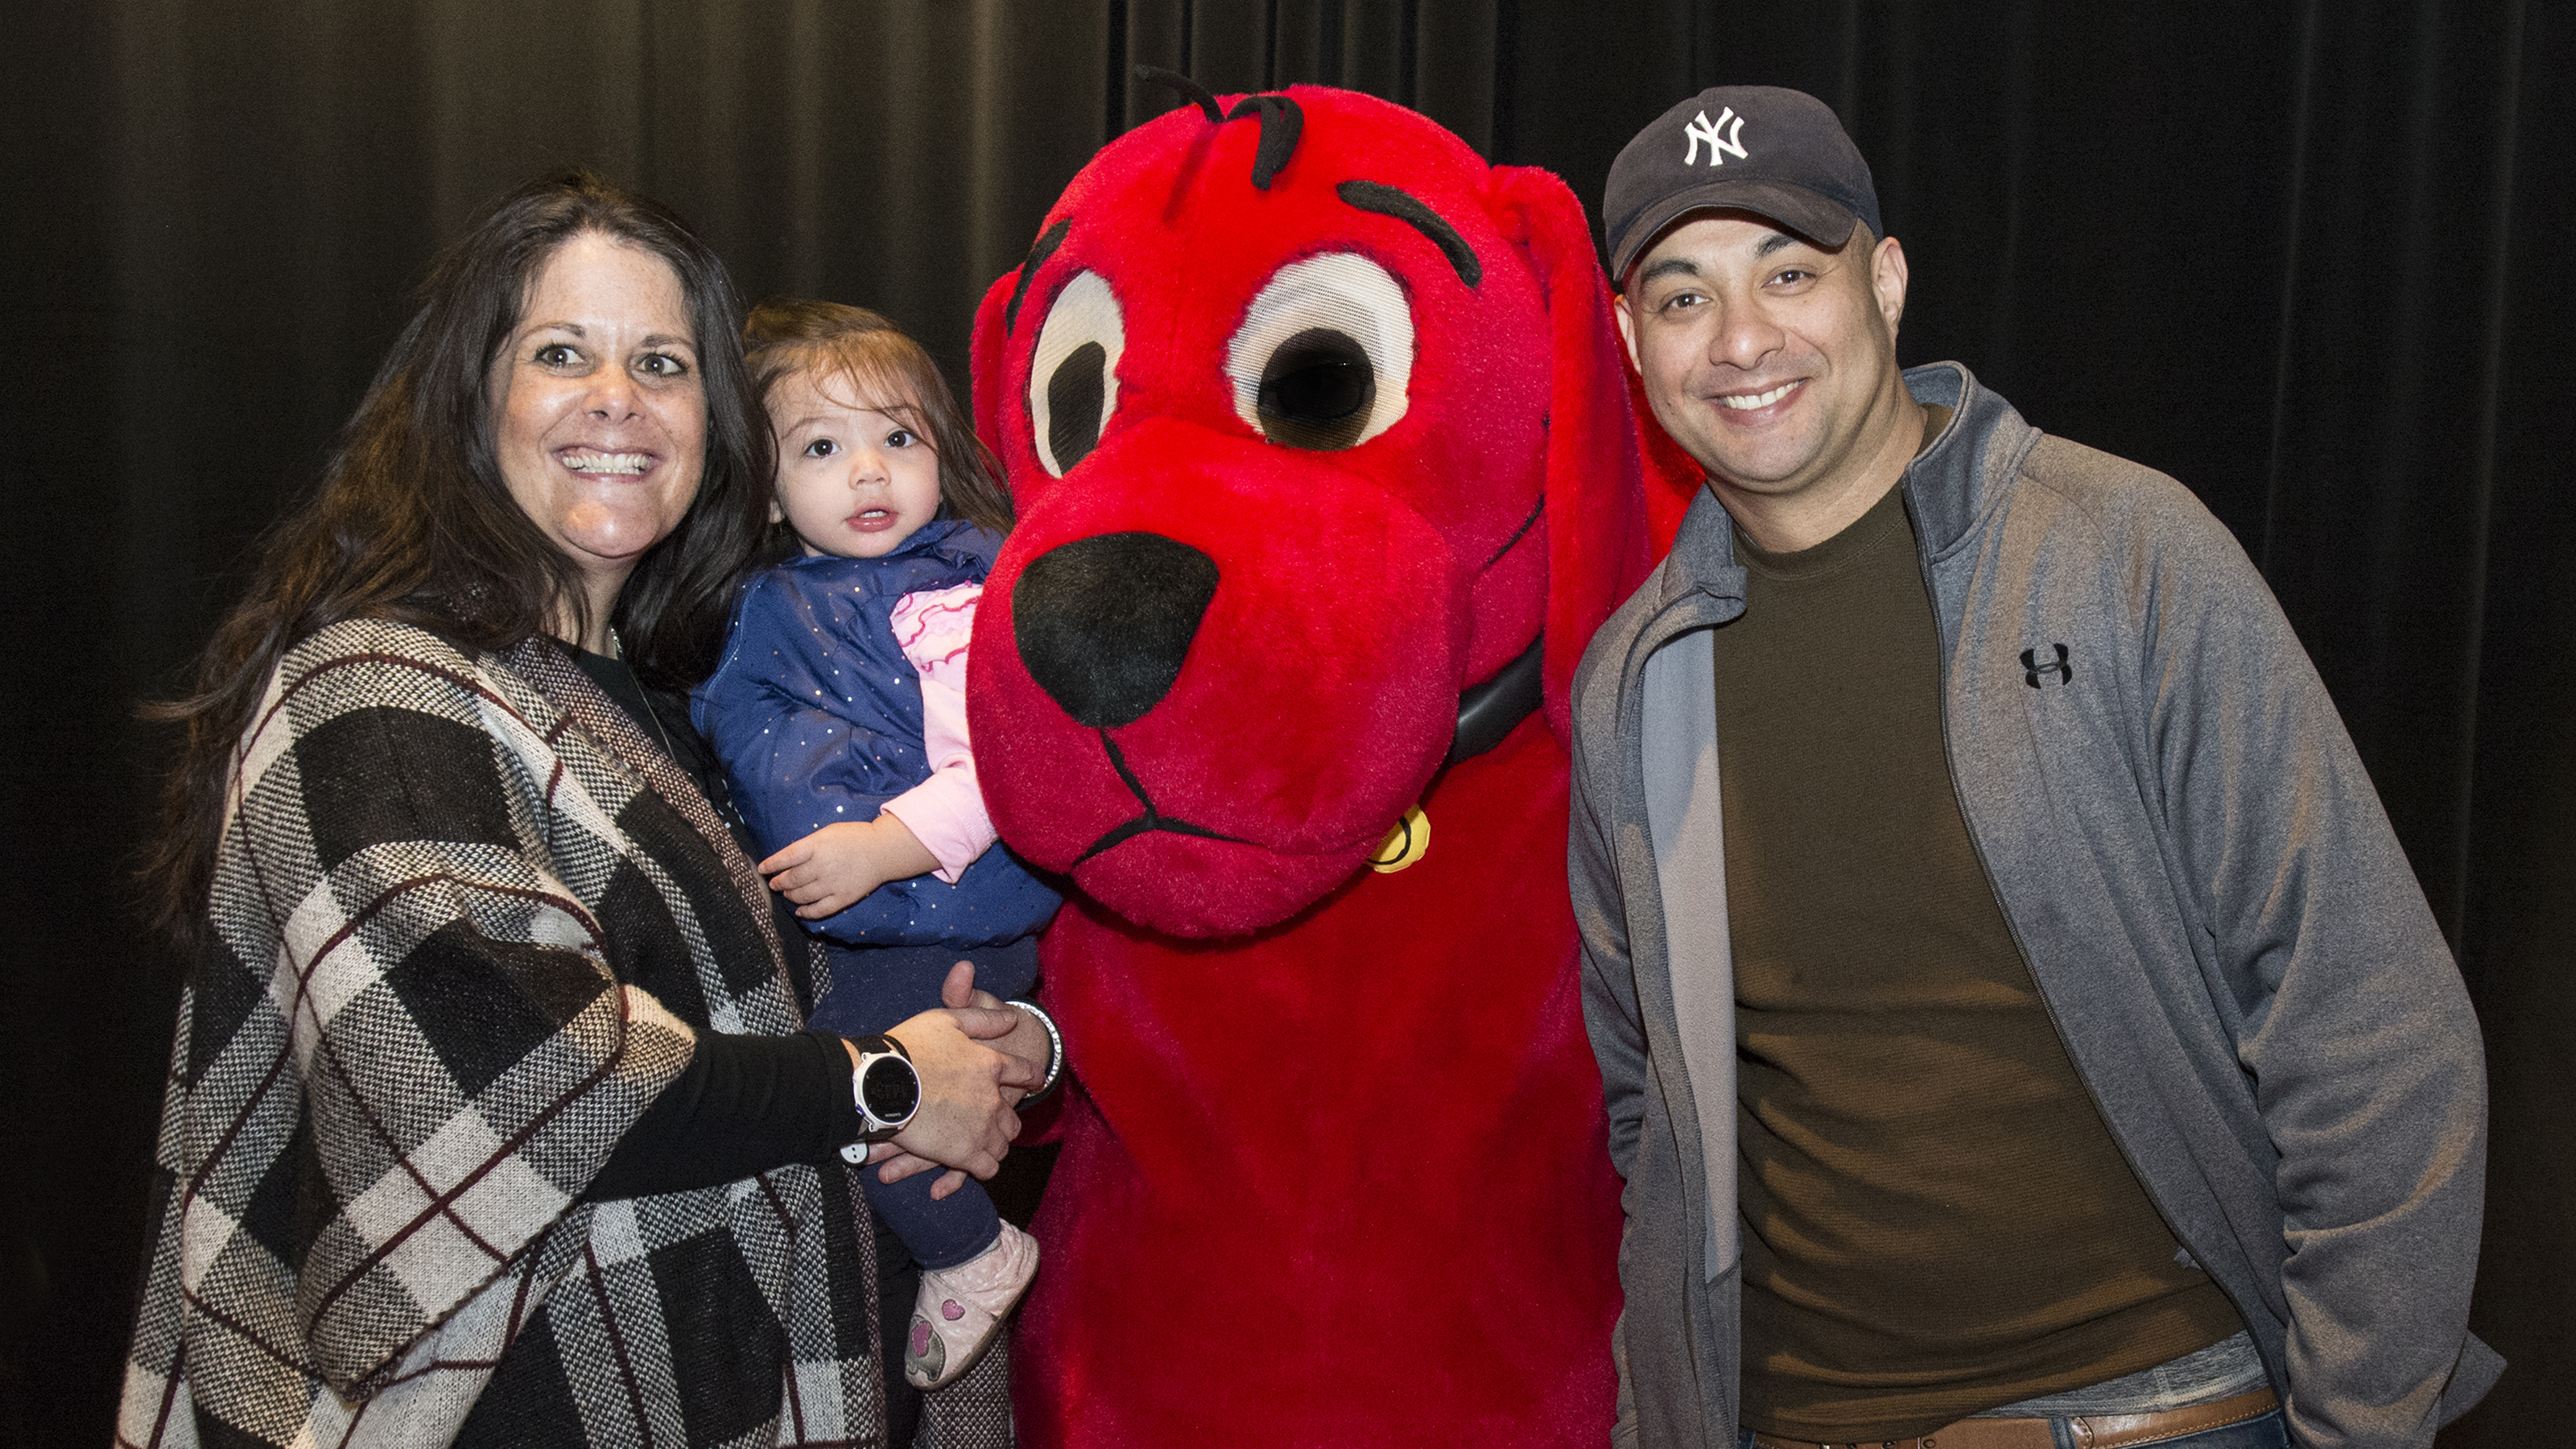 PBS KIDS family pose with Clifford